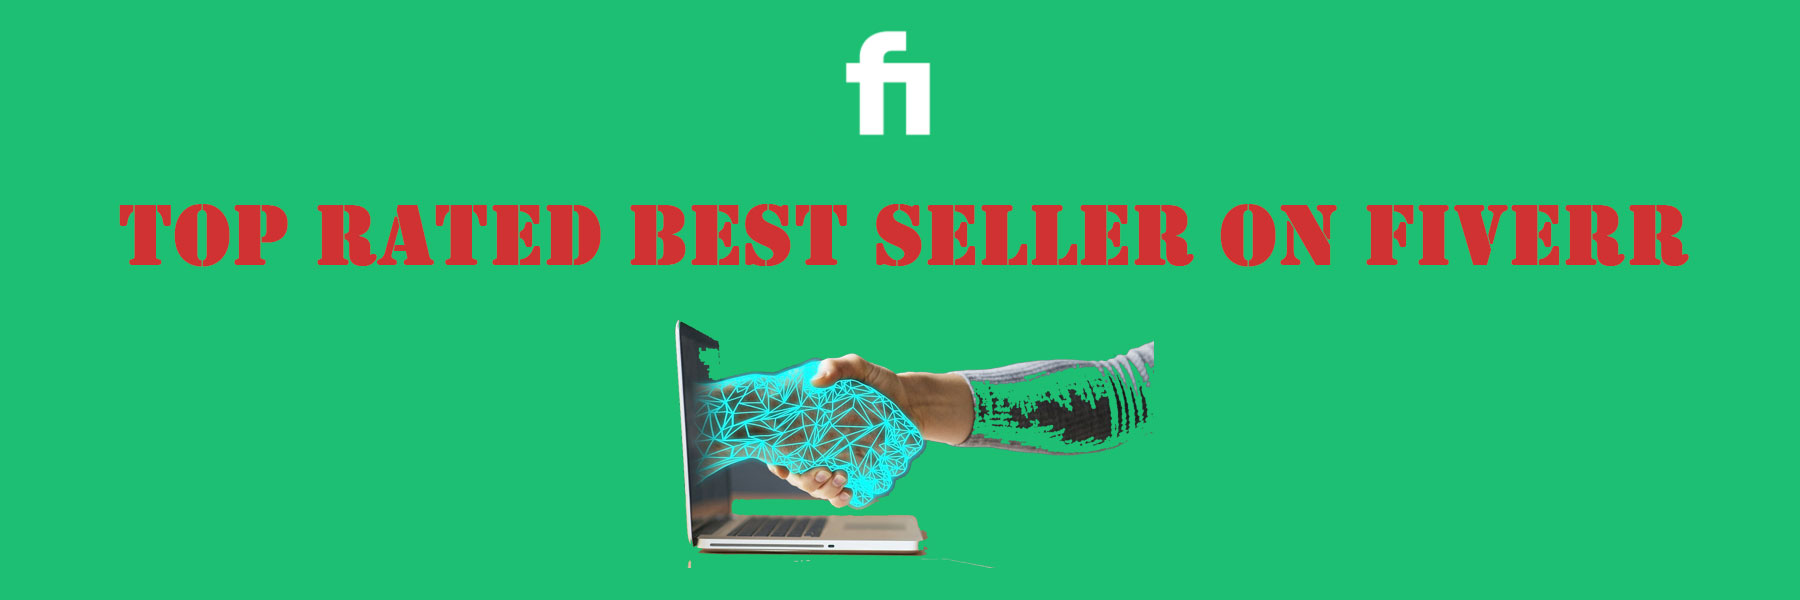 Top Rated Best Seller on Fiverr